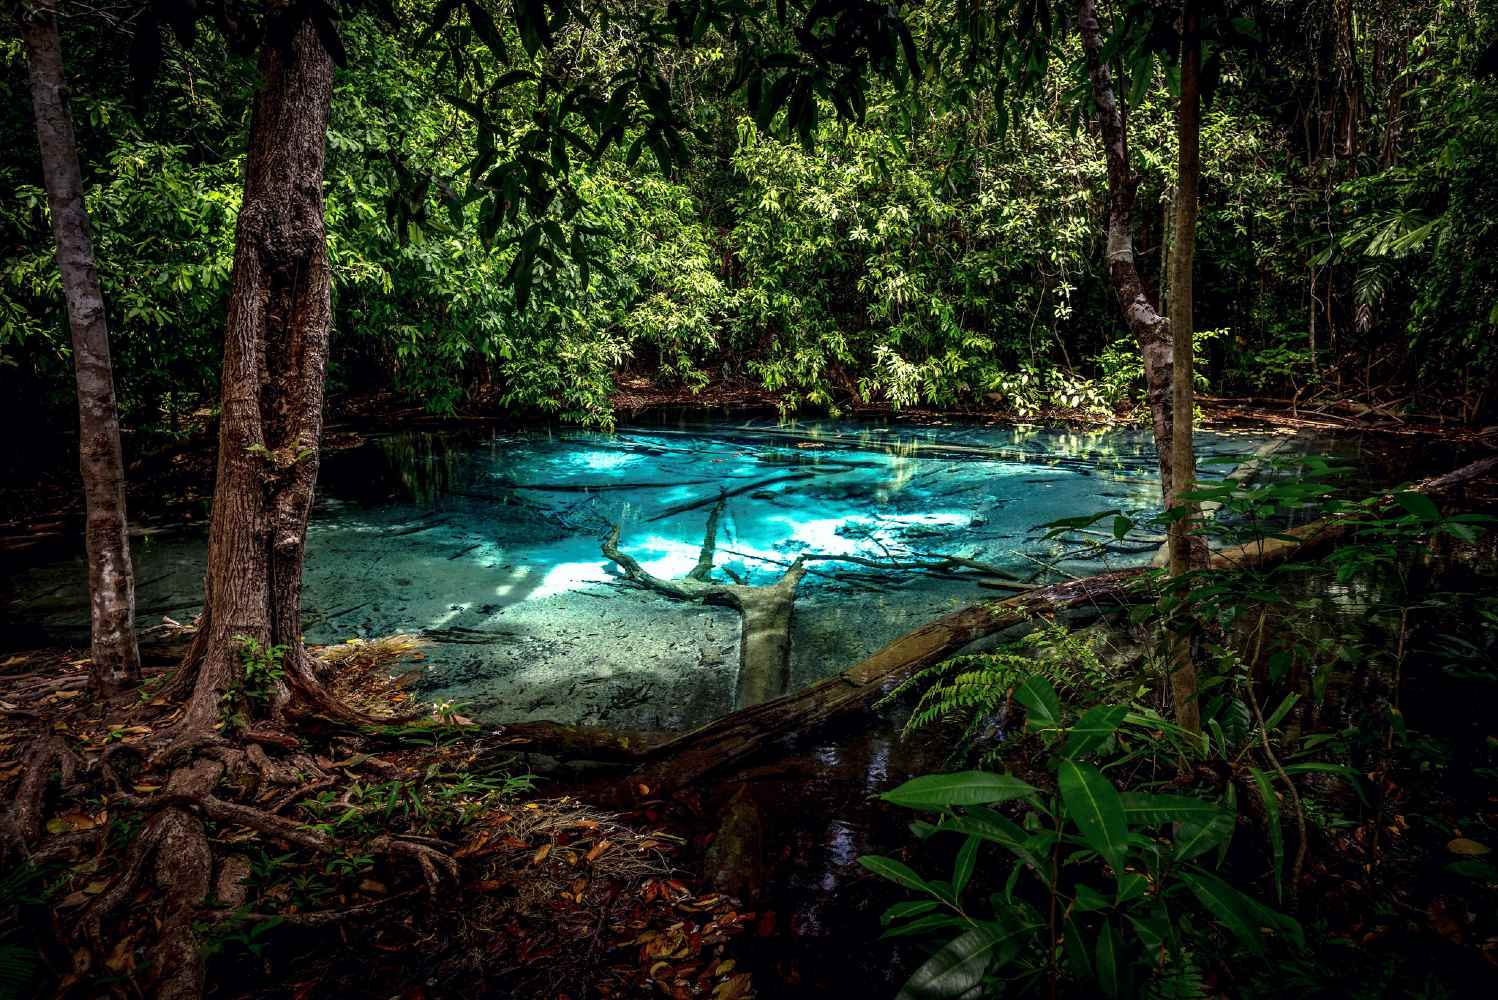 Clear blue waters of the Blue Pool surrounded by jungle